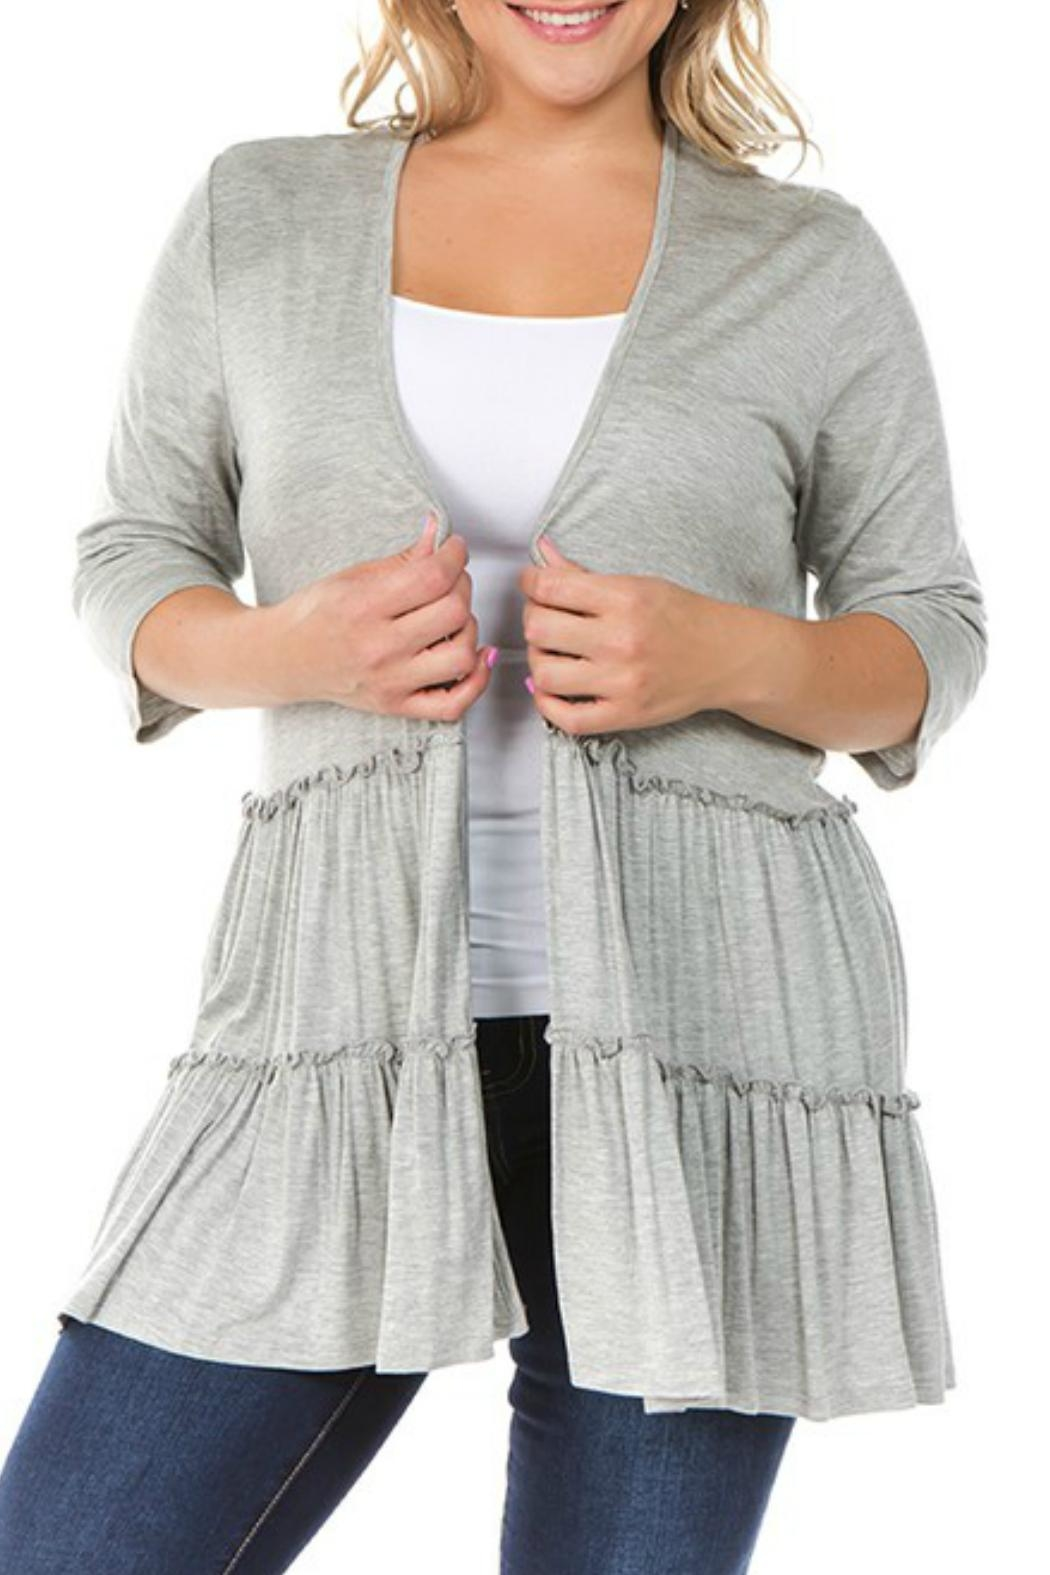 Spin USA Tiered Ruffle Cardigan - Main Image